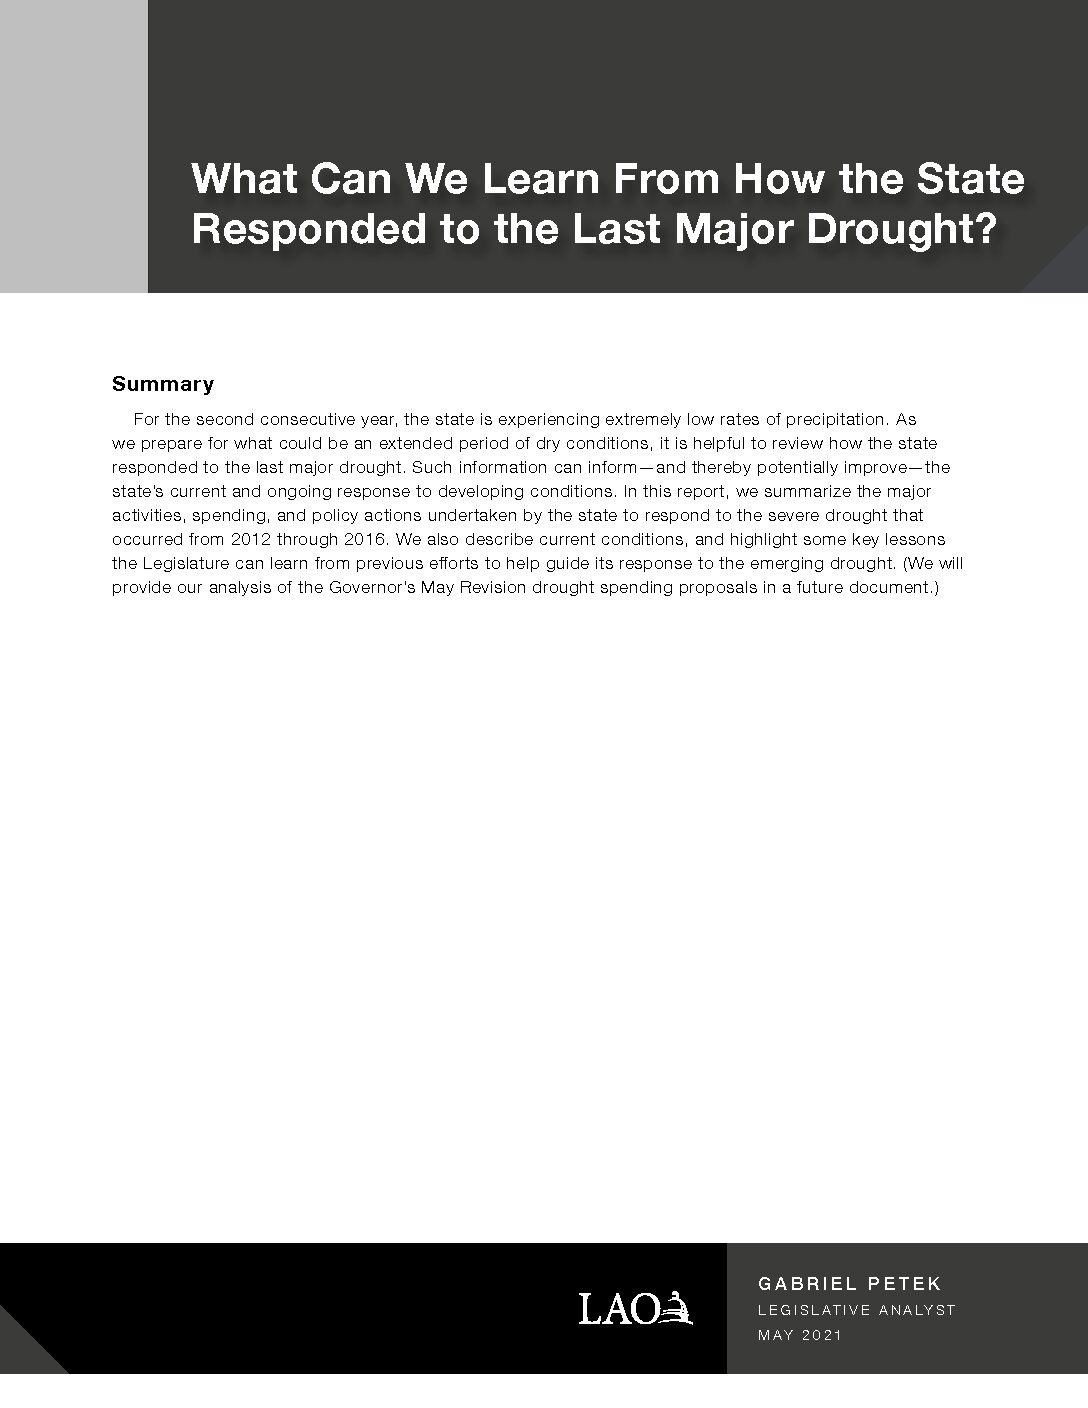 What Can We Learn From How the State Responded to the Last Major Drought?